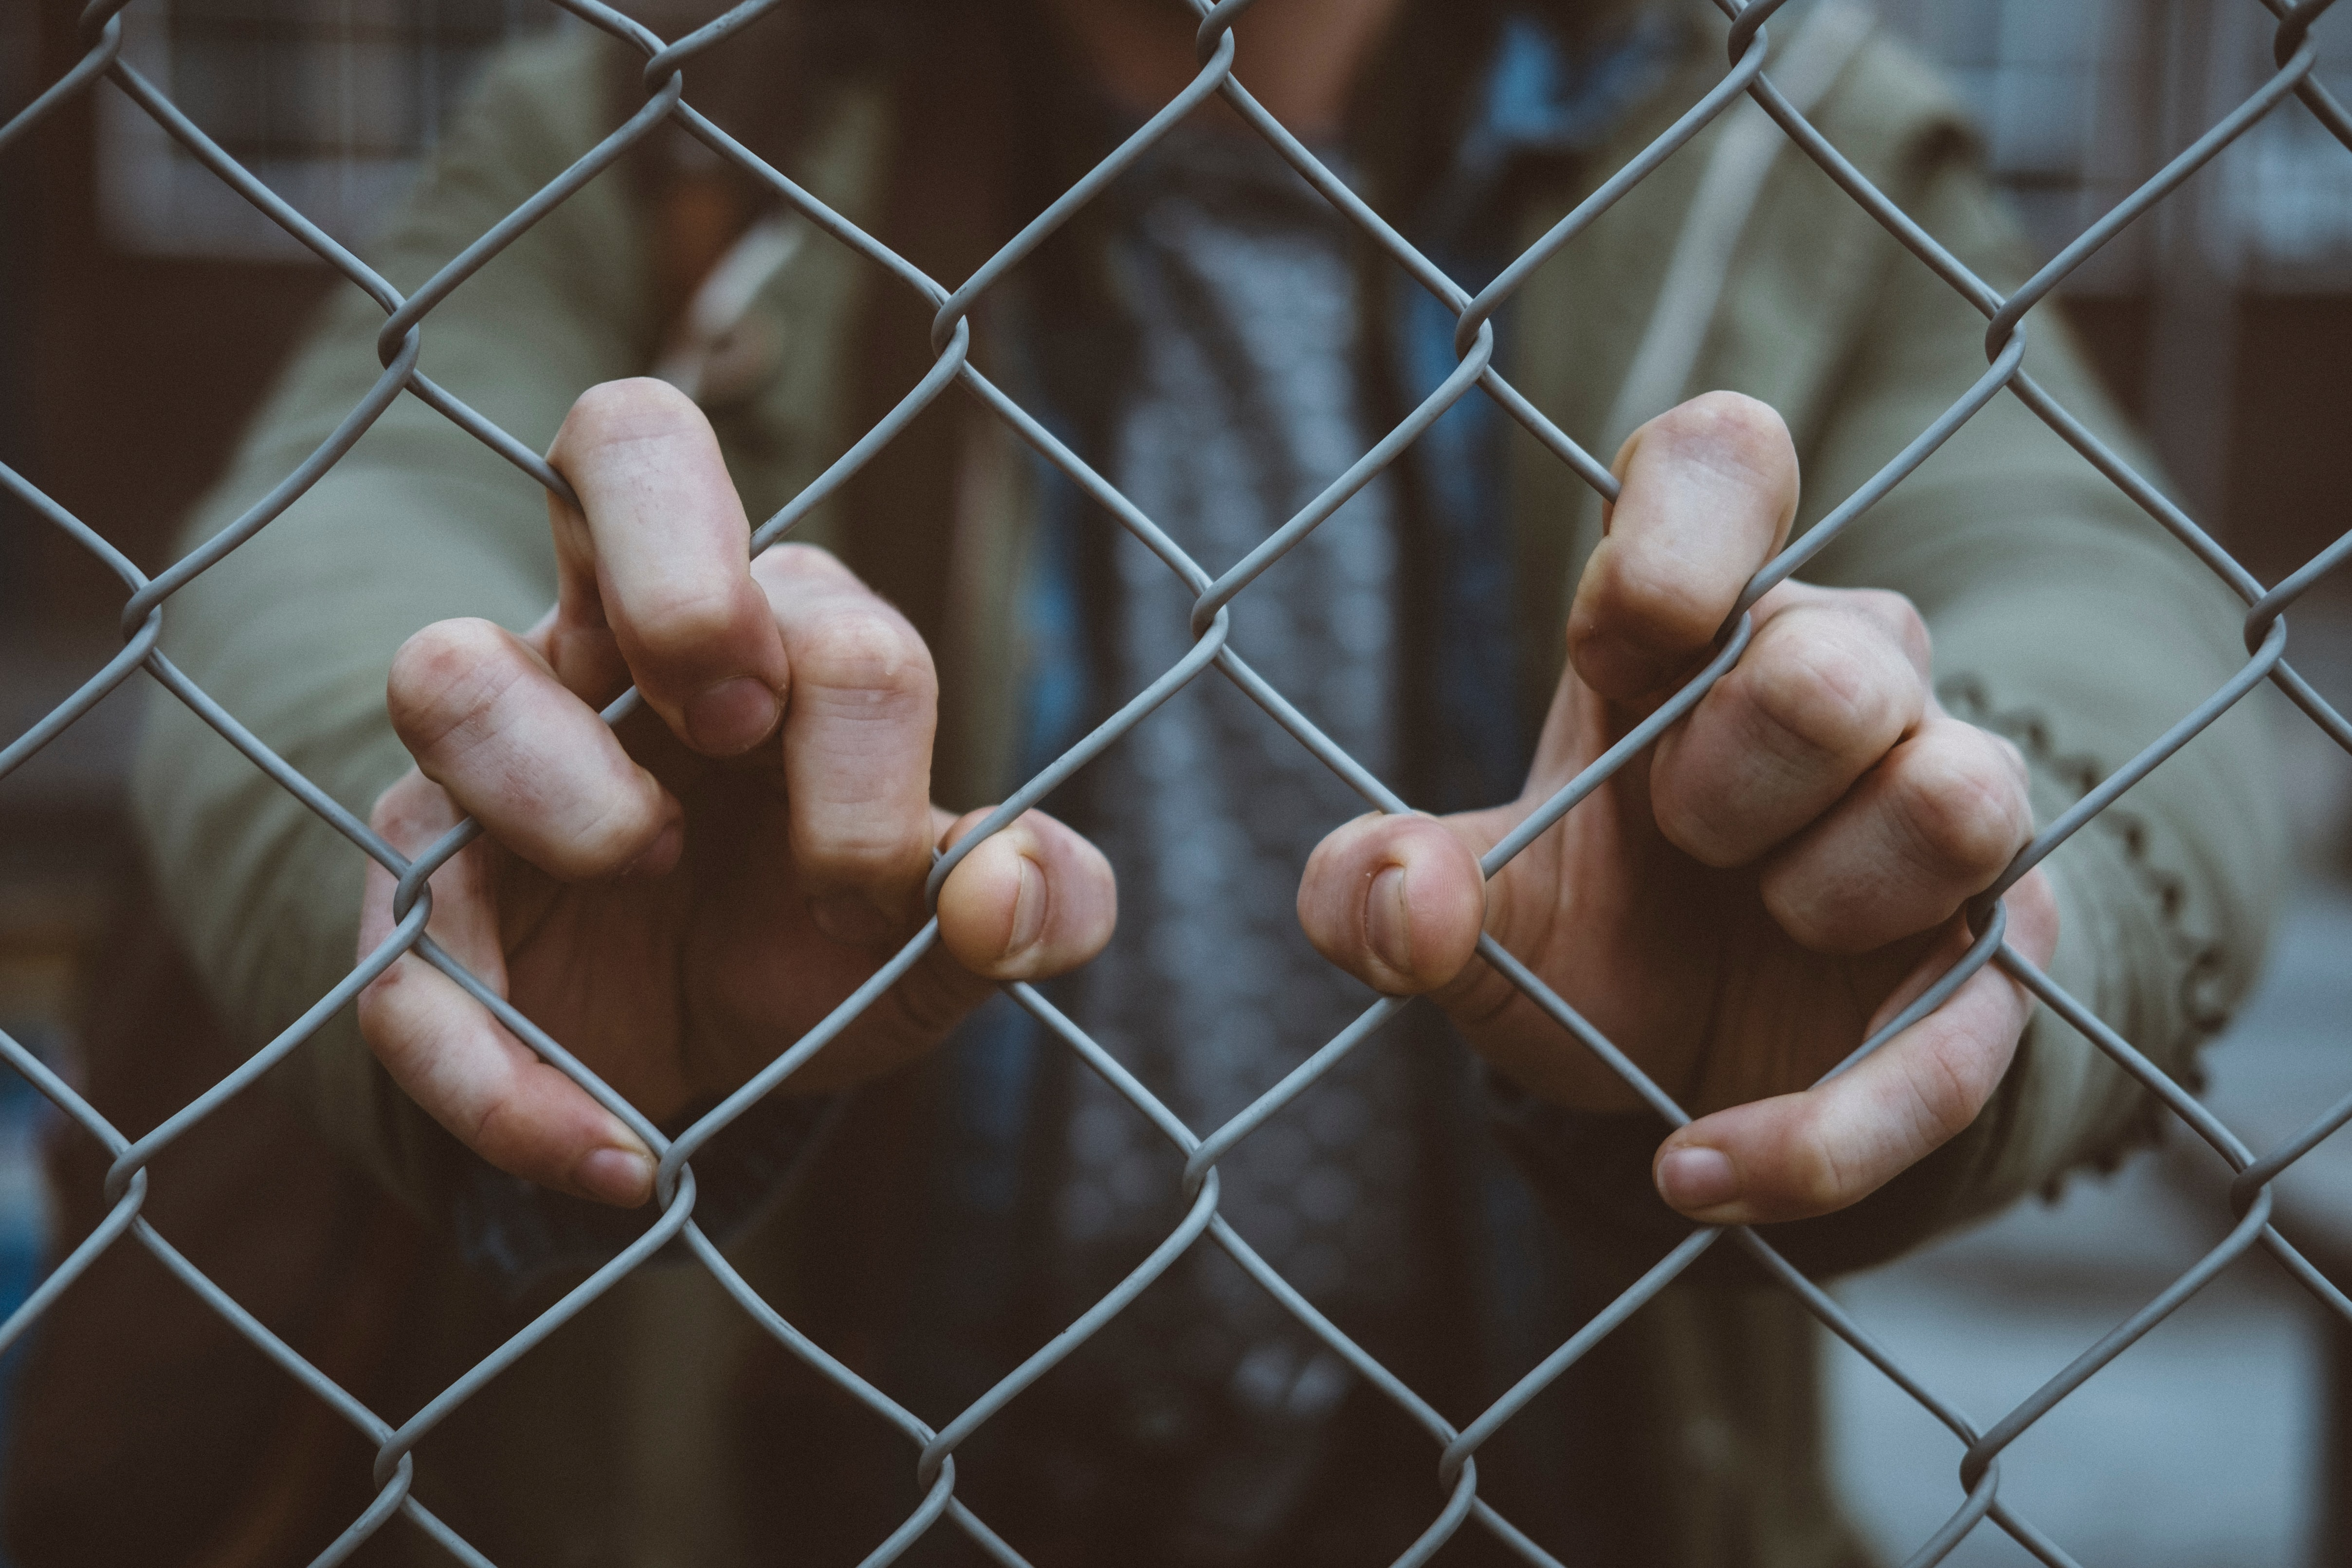 Person behind a cage holding on to it. Photo courtesy of Mitchel Lensink on Unsplash.